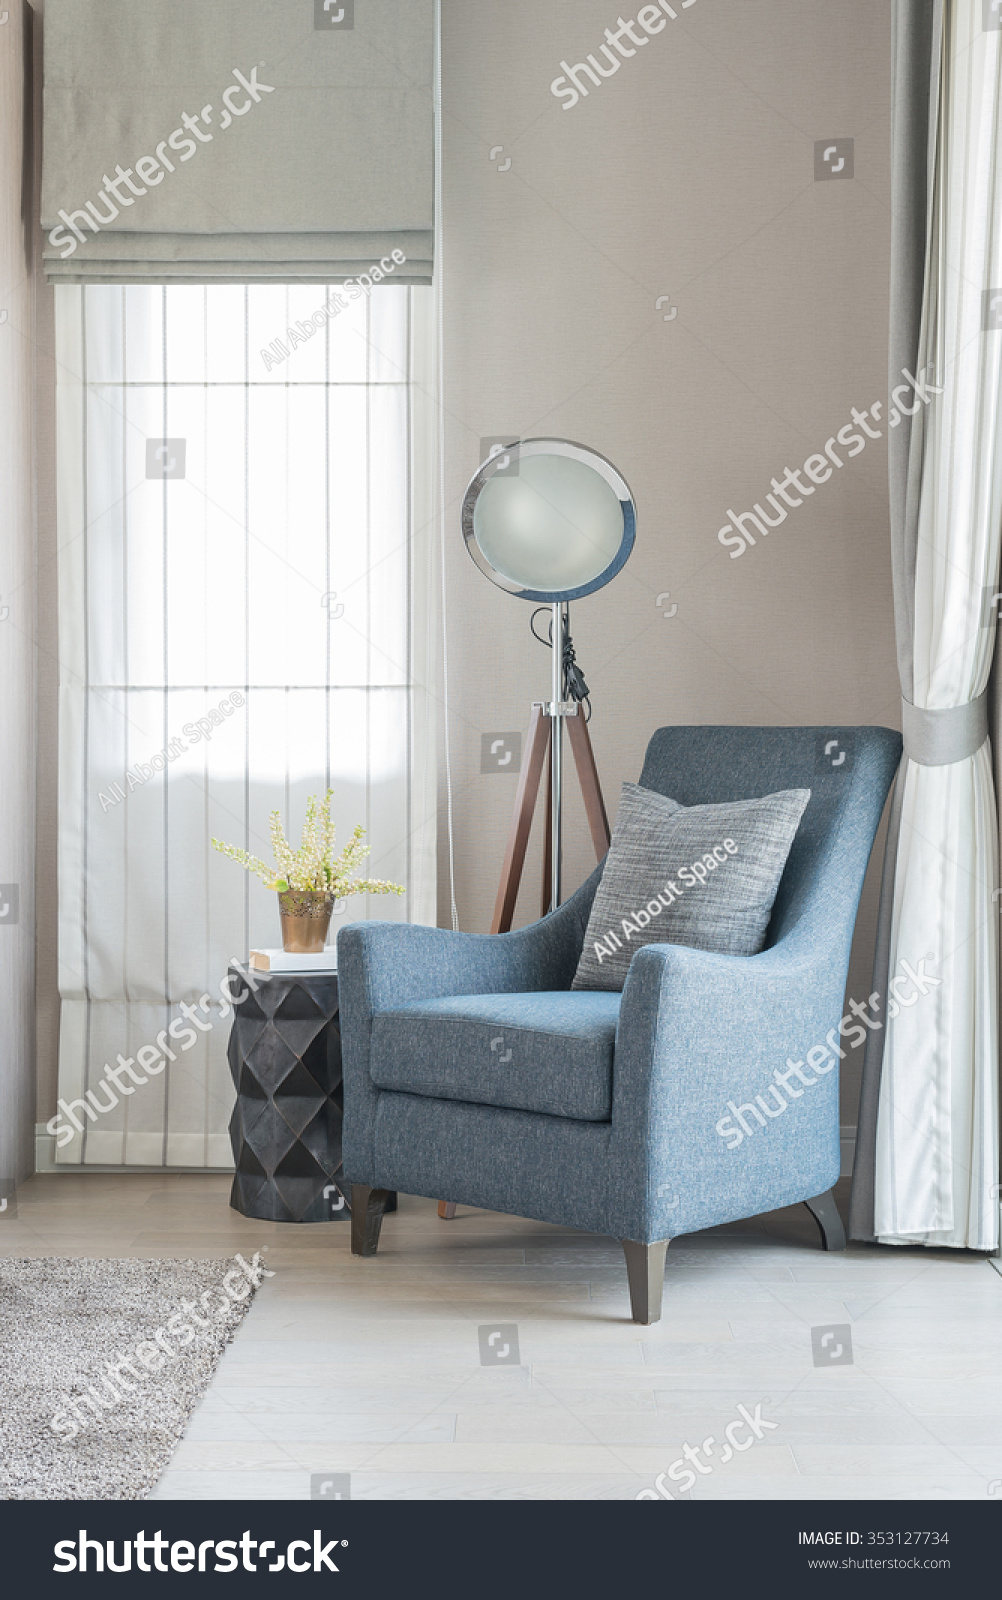 classic style sofa with pillows and modern lamp in living room